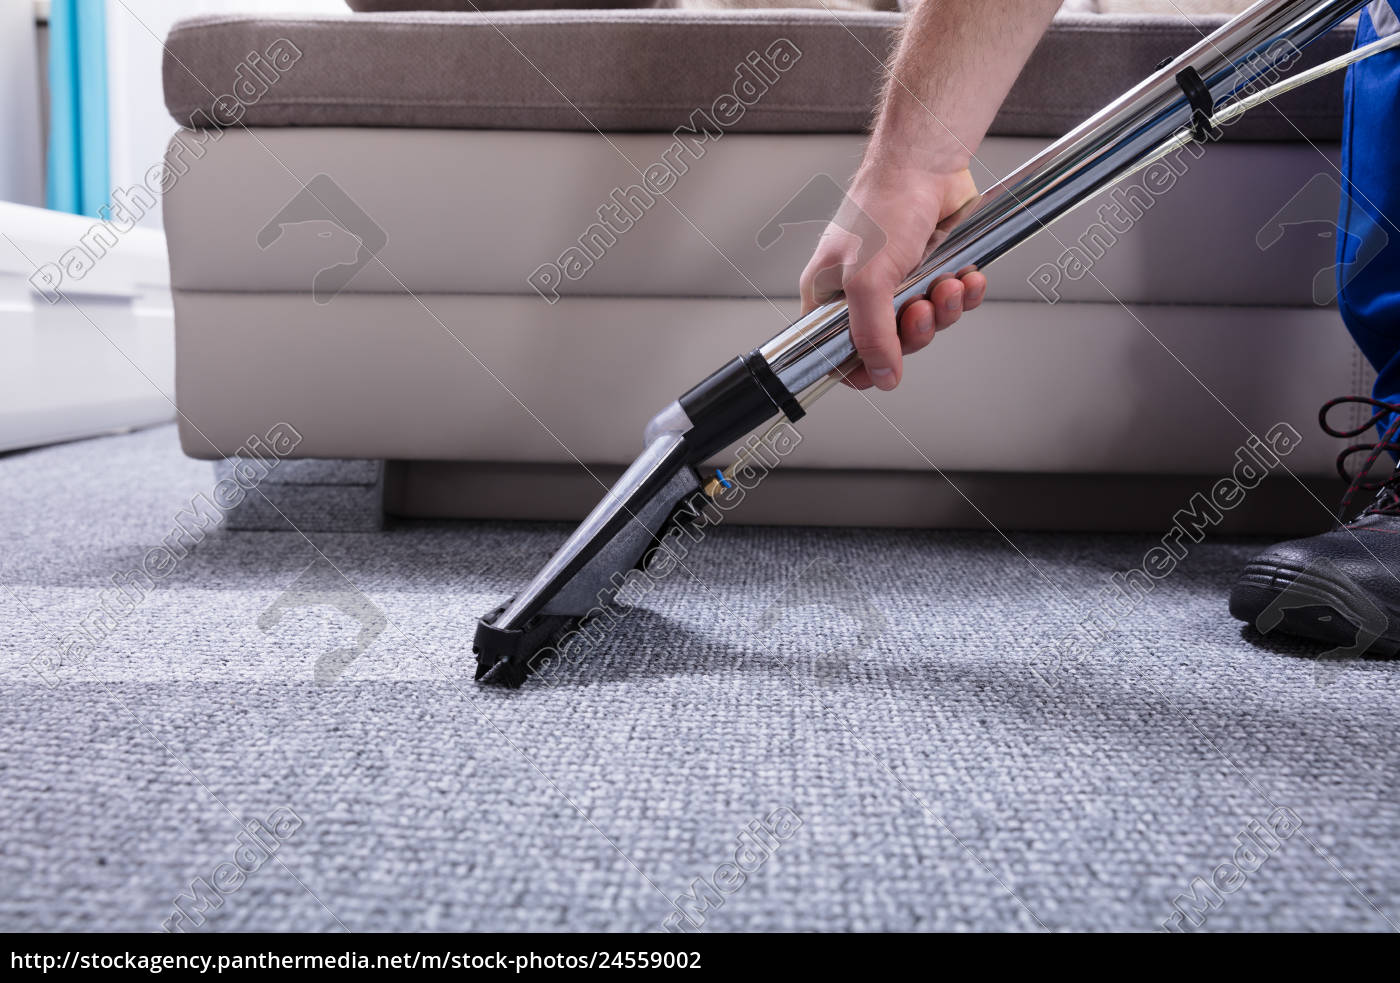 Janitor Cleaning Carpet With Vacuum